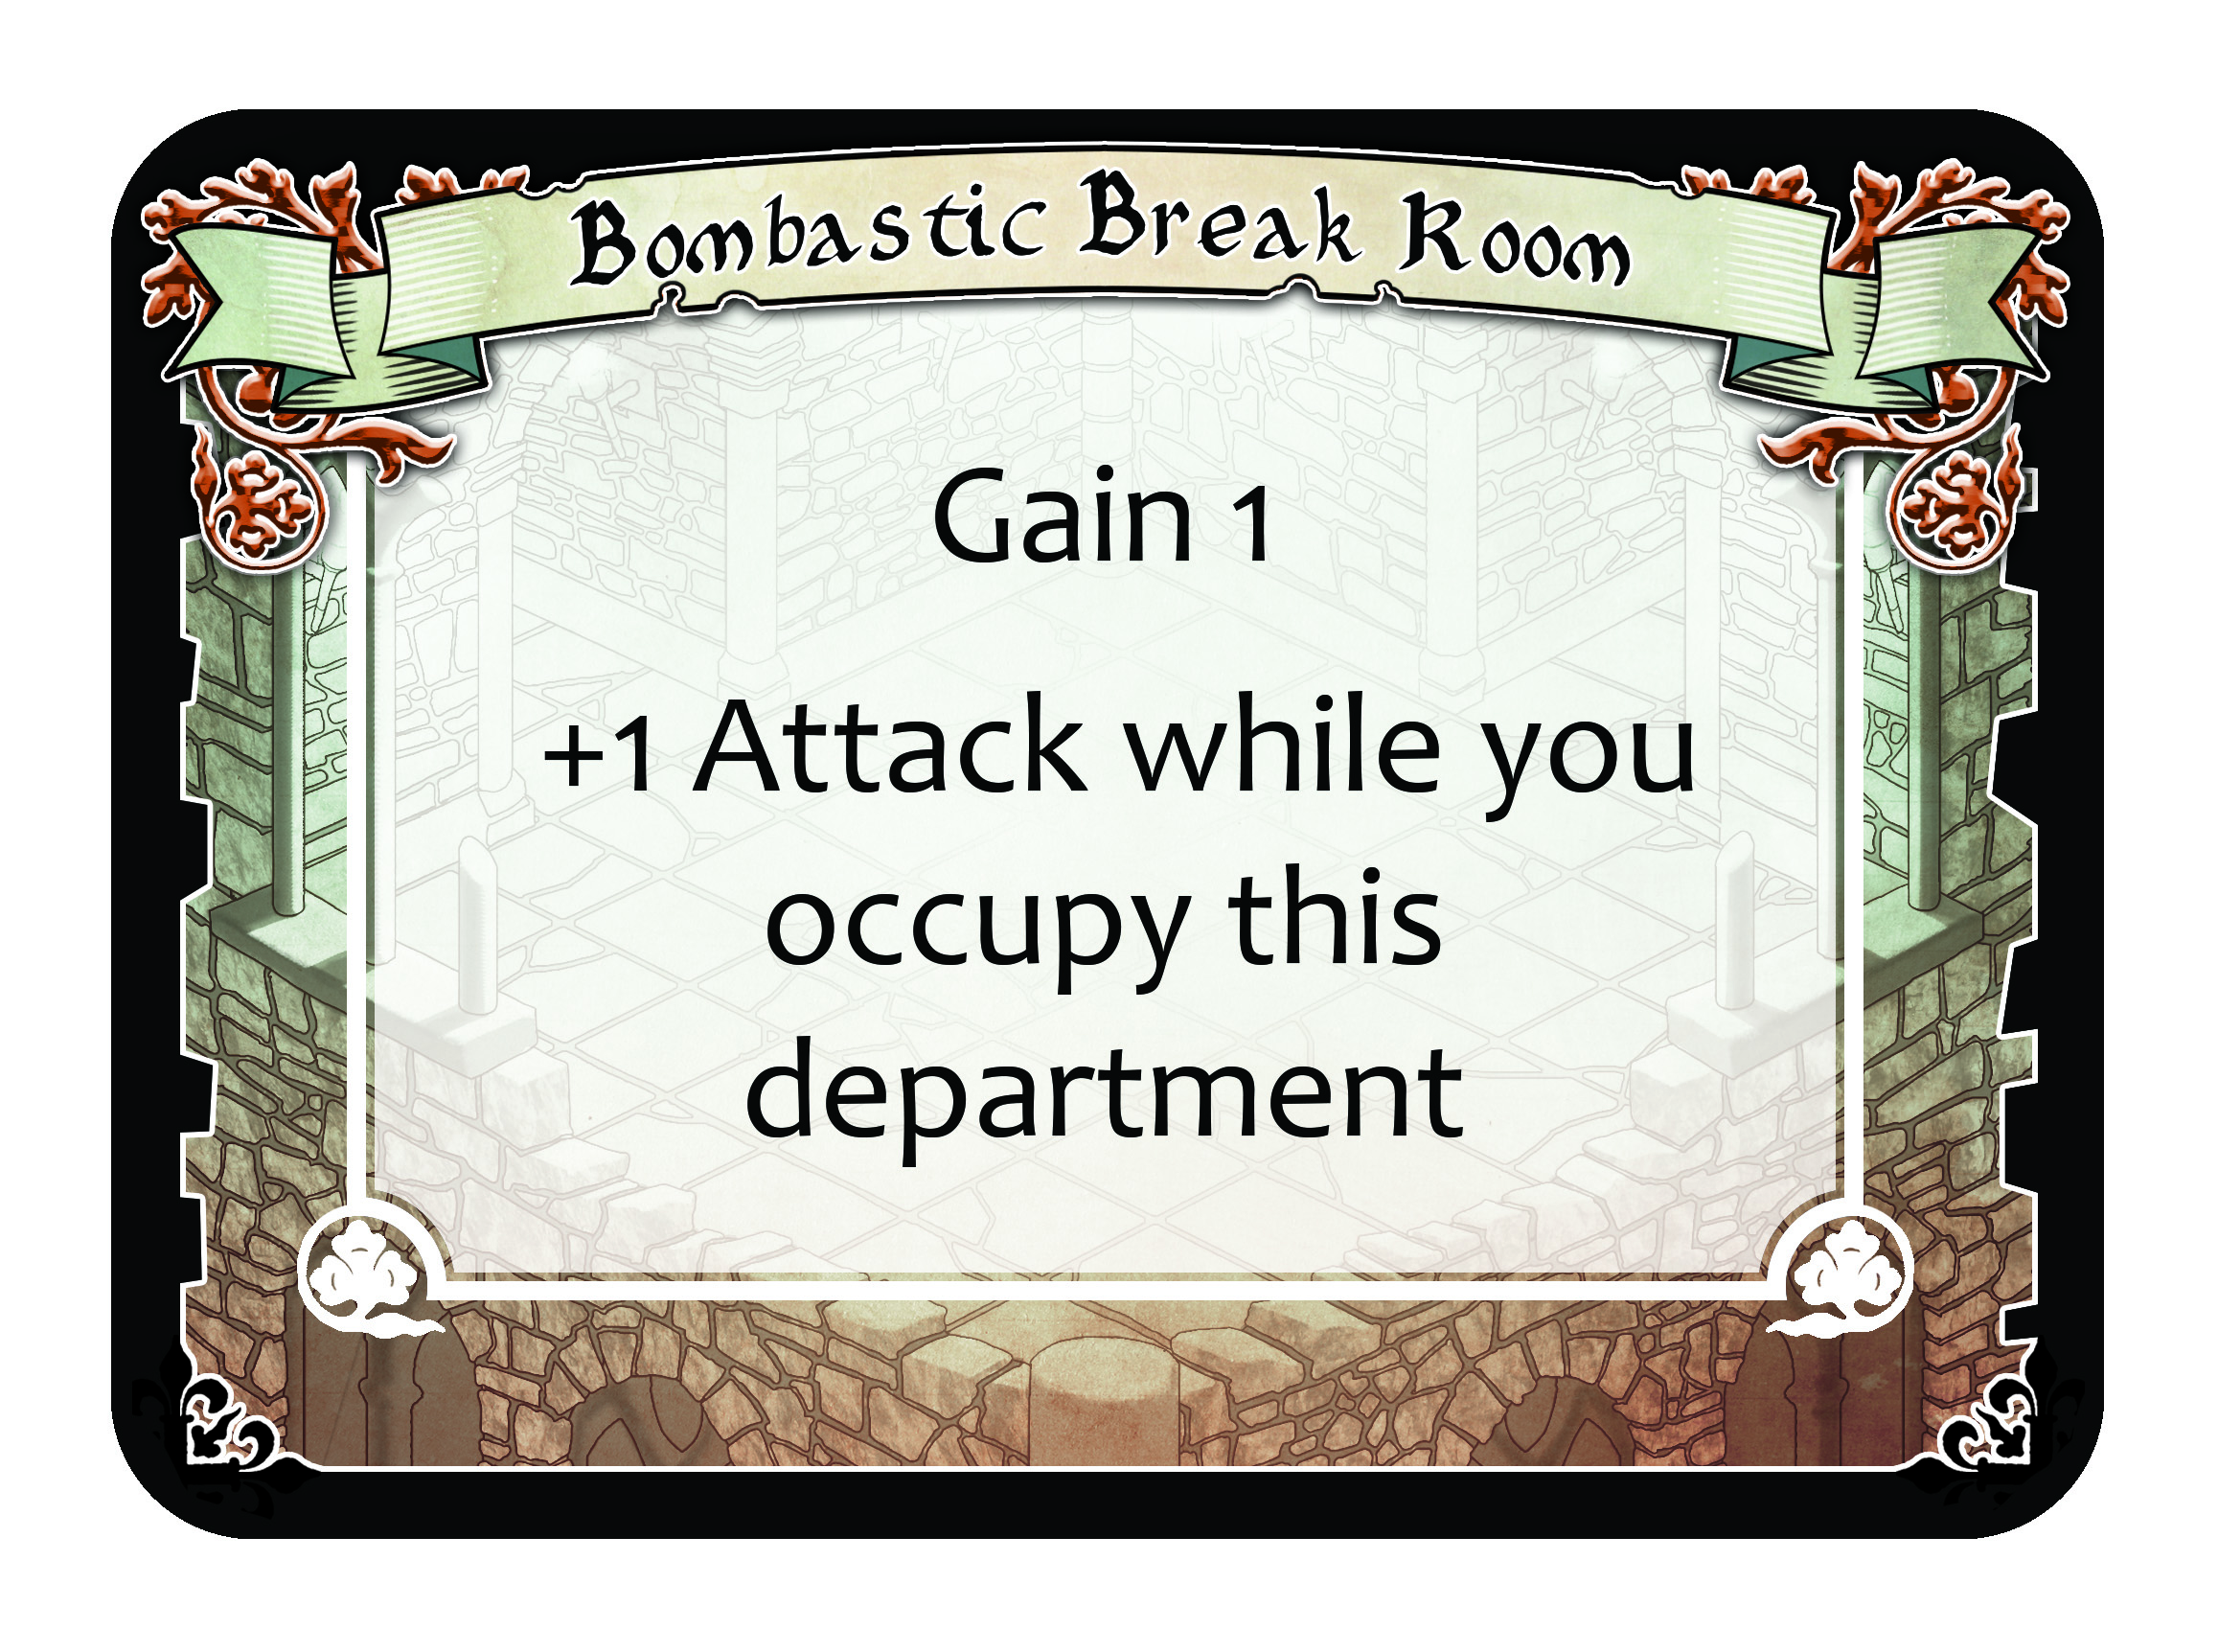 RANDOM - Bombastic Break Room